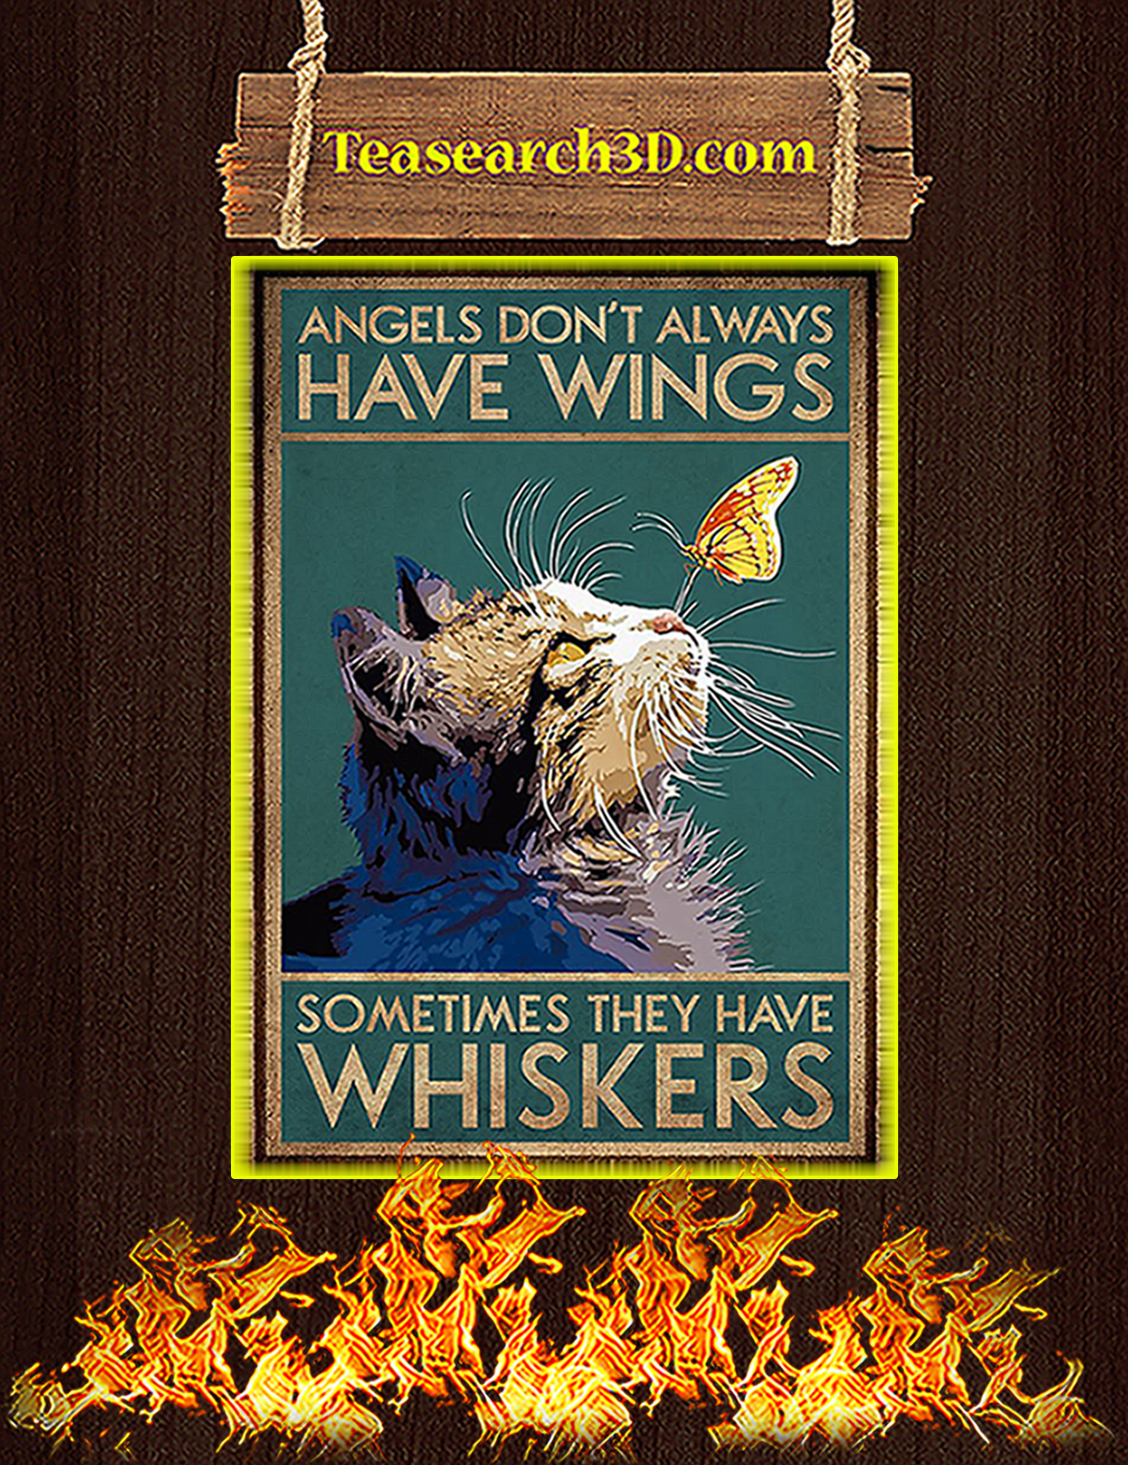 Cat Angels don't alway have wings sometimes they have whiskers poster A3